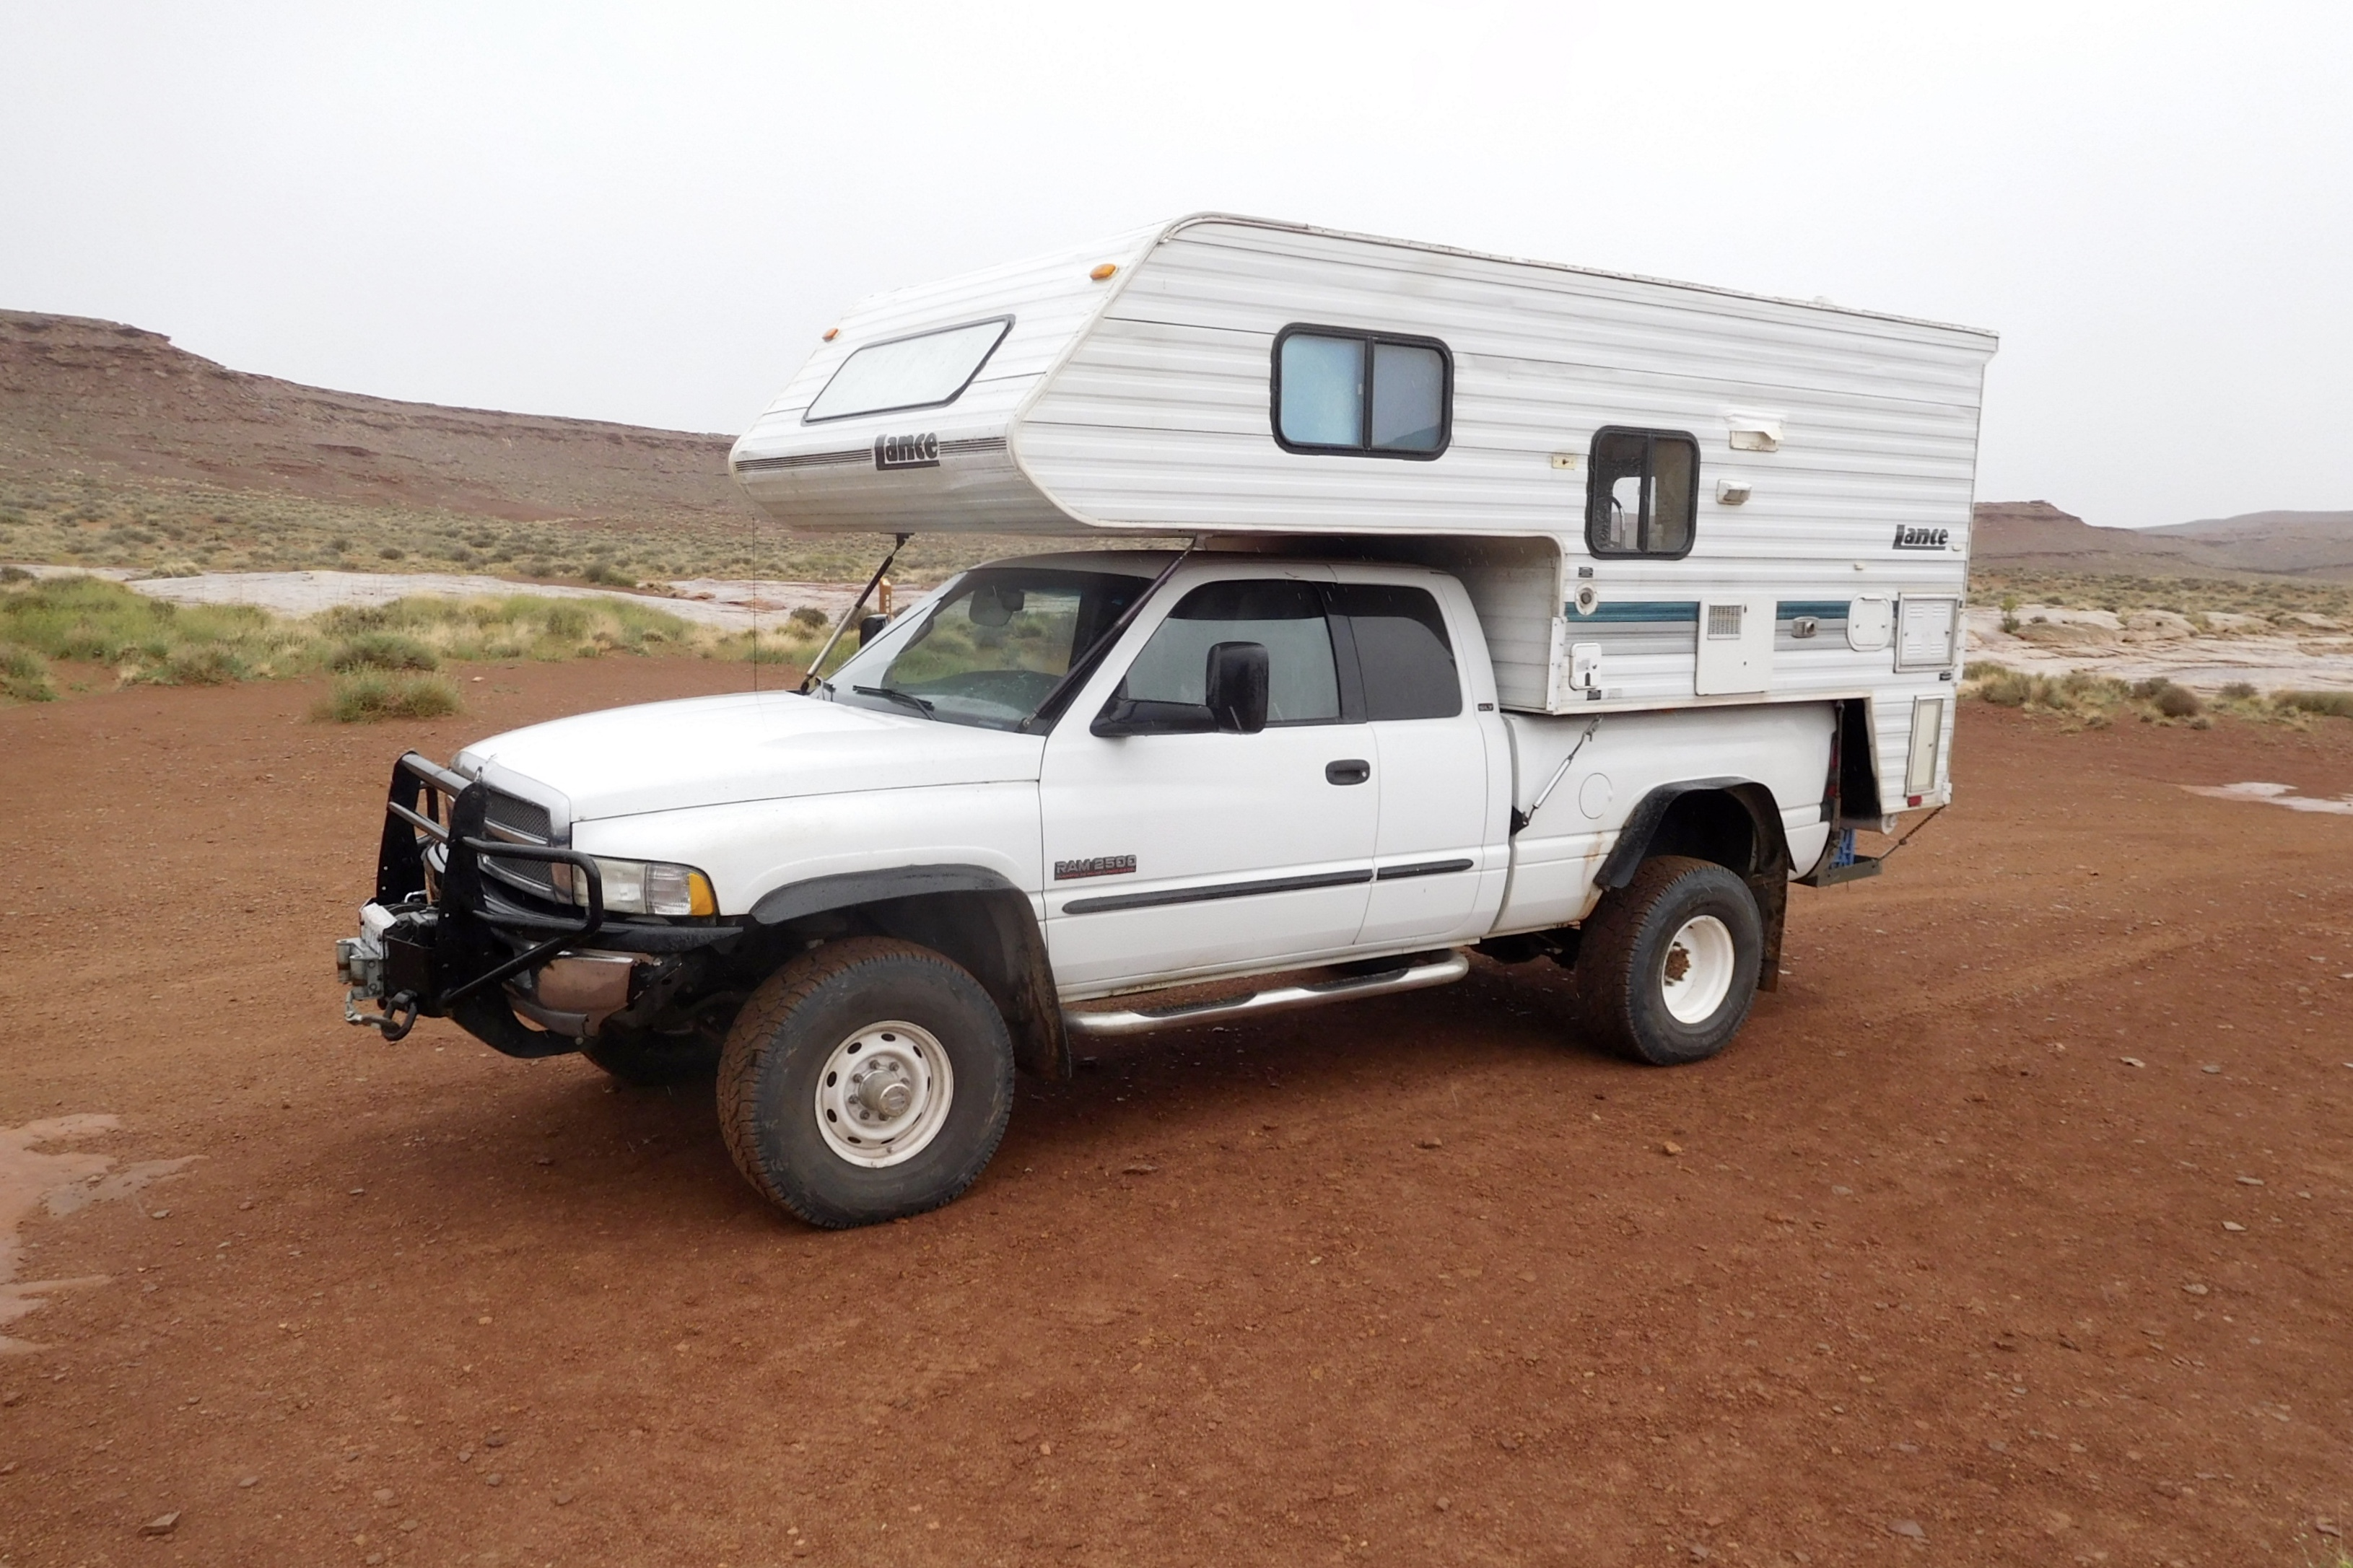 Jefe Tackles Canyonland S White Rim Trail Truck Camper Adventure